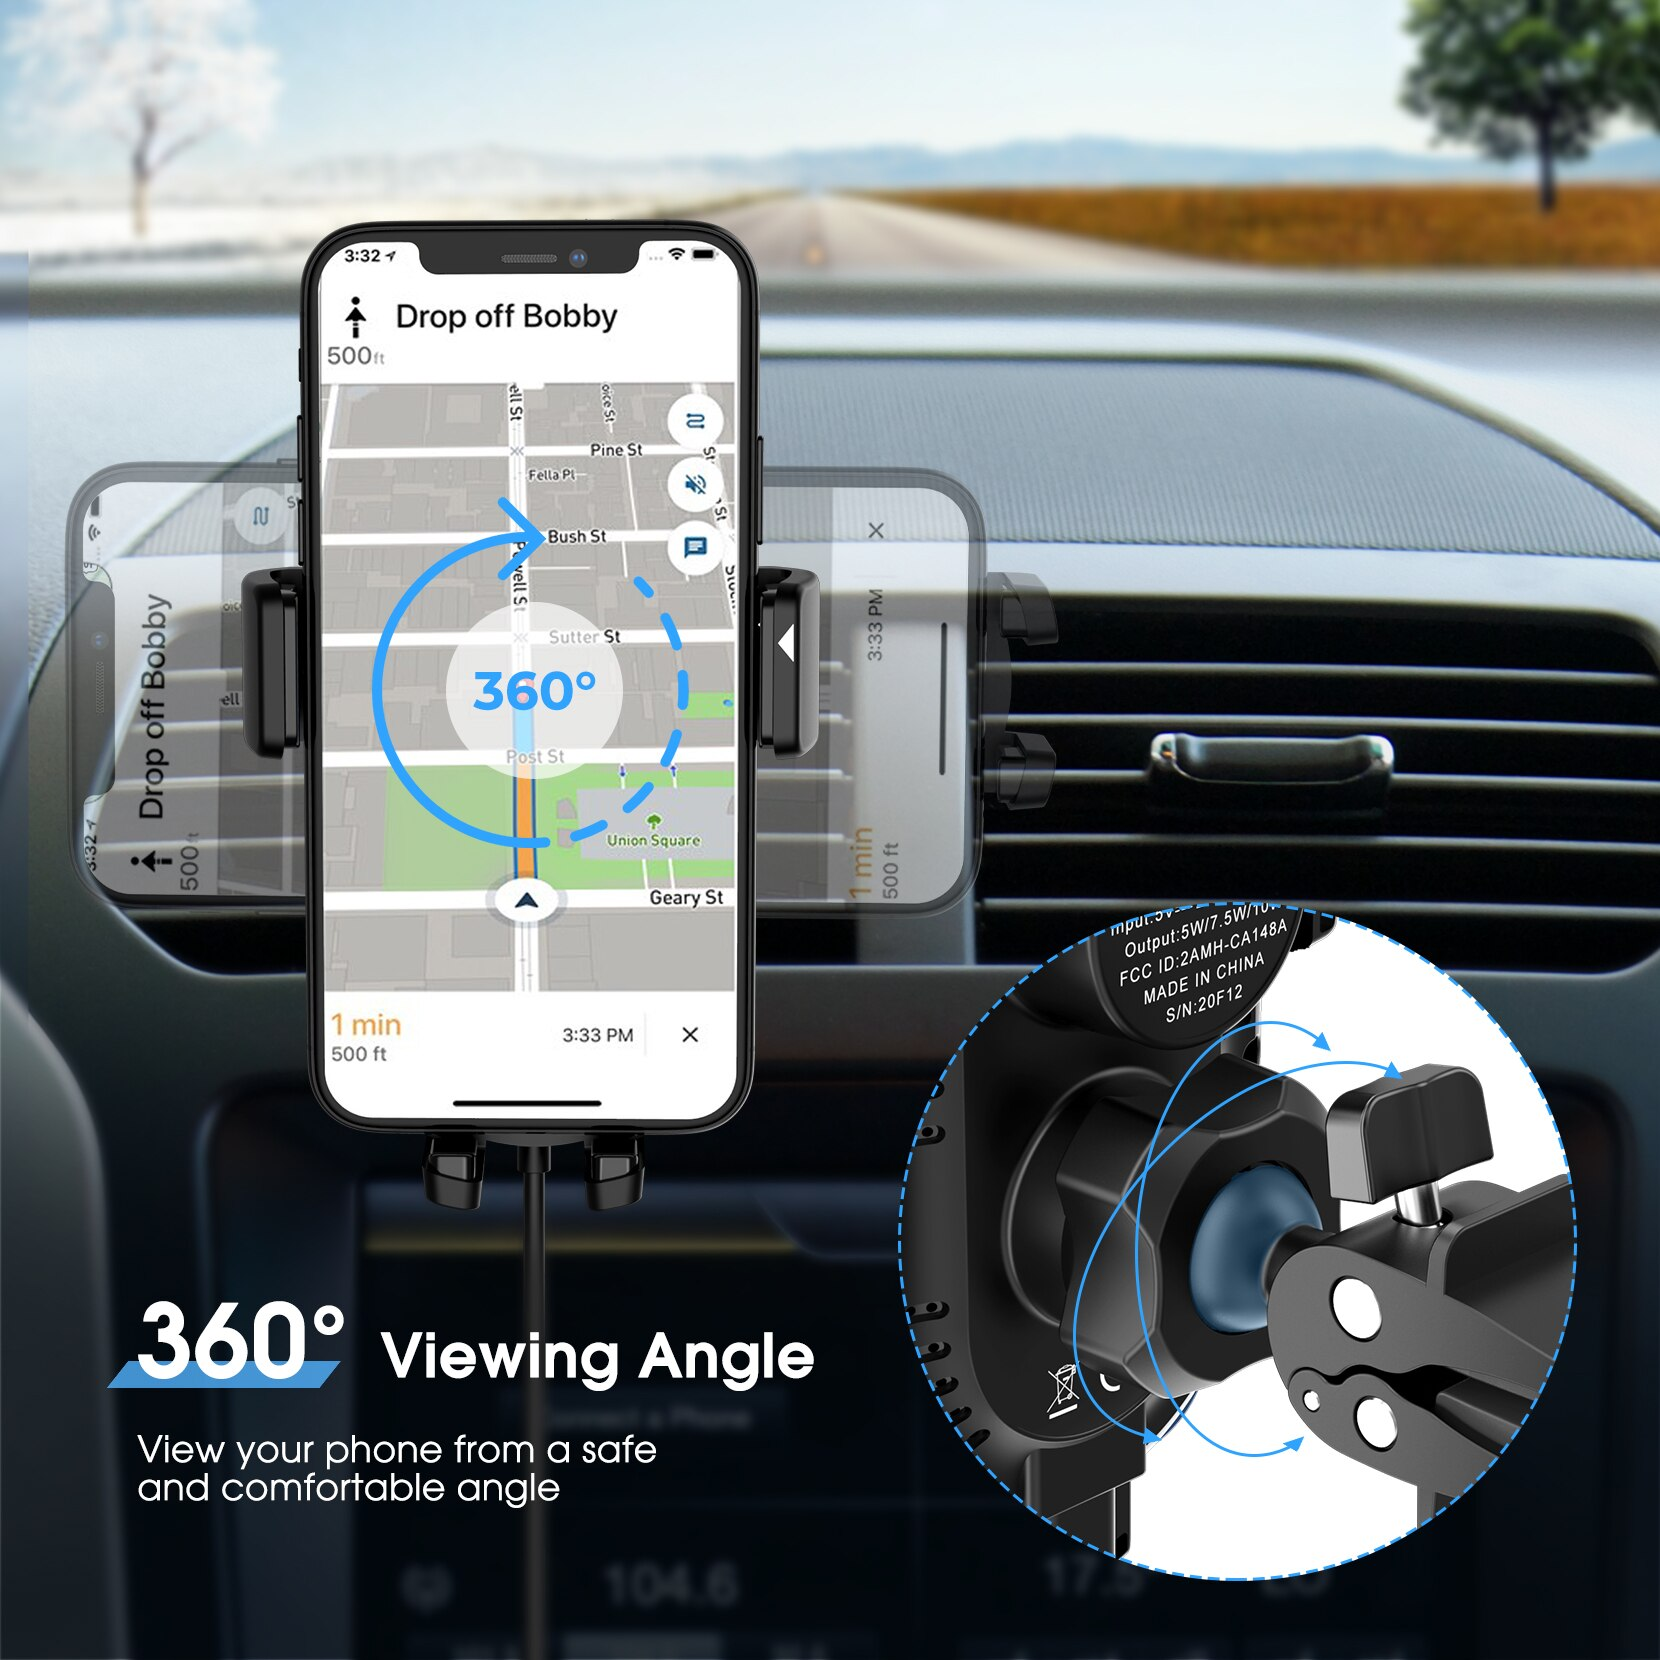 H7b95aa41b1f64b3c99d9f61fcb567af8S - MPOW CA164 Wireless Car Charger 10W Auto-clamping Qi Fast Charging Car Mount with Built-in Battery Cup Holder Vent Phone Holder